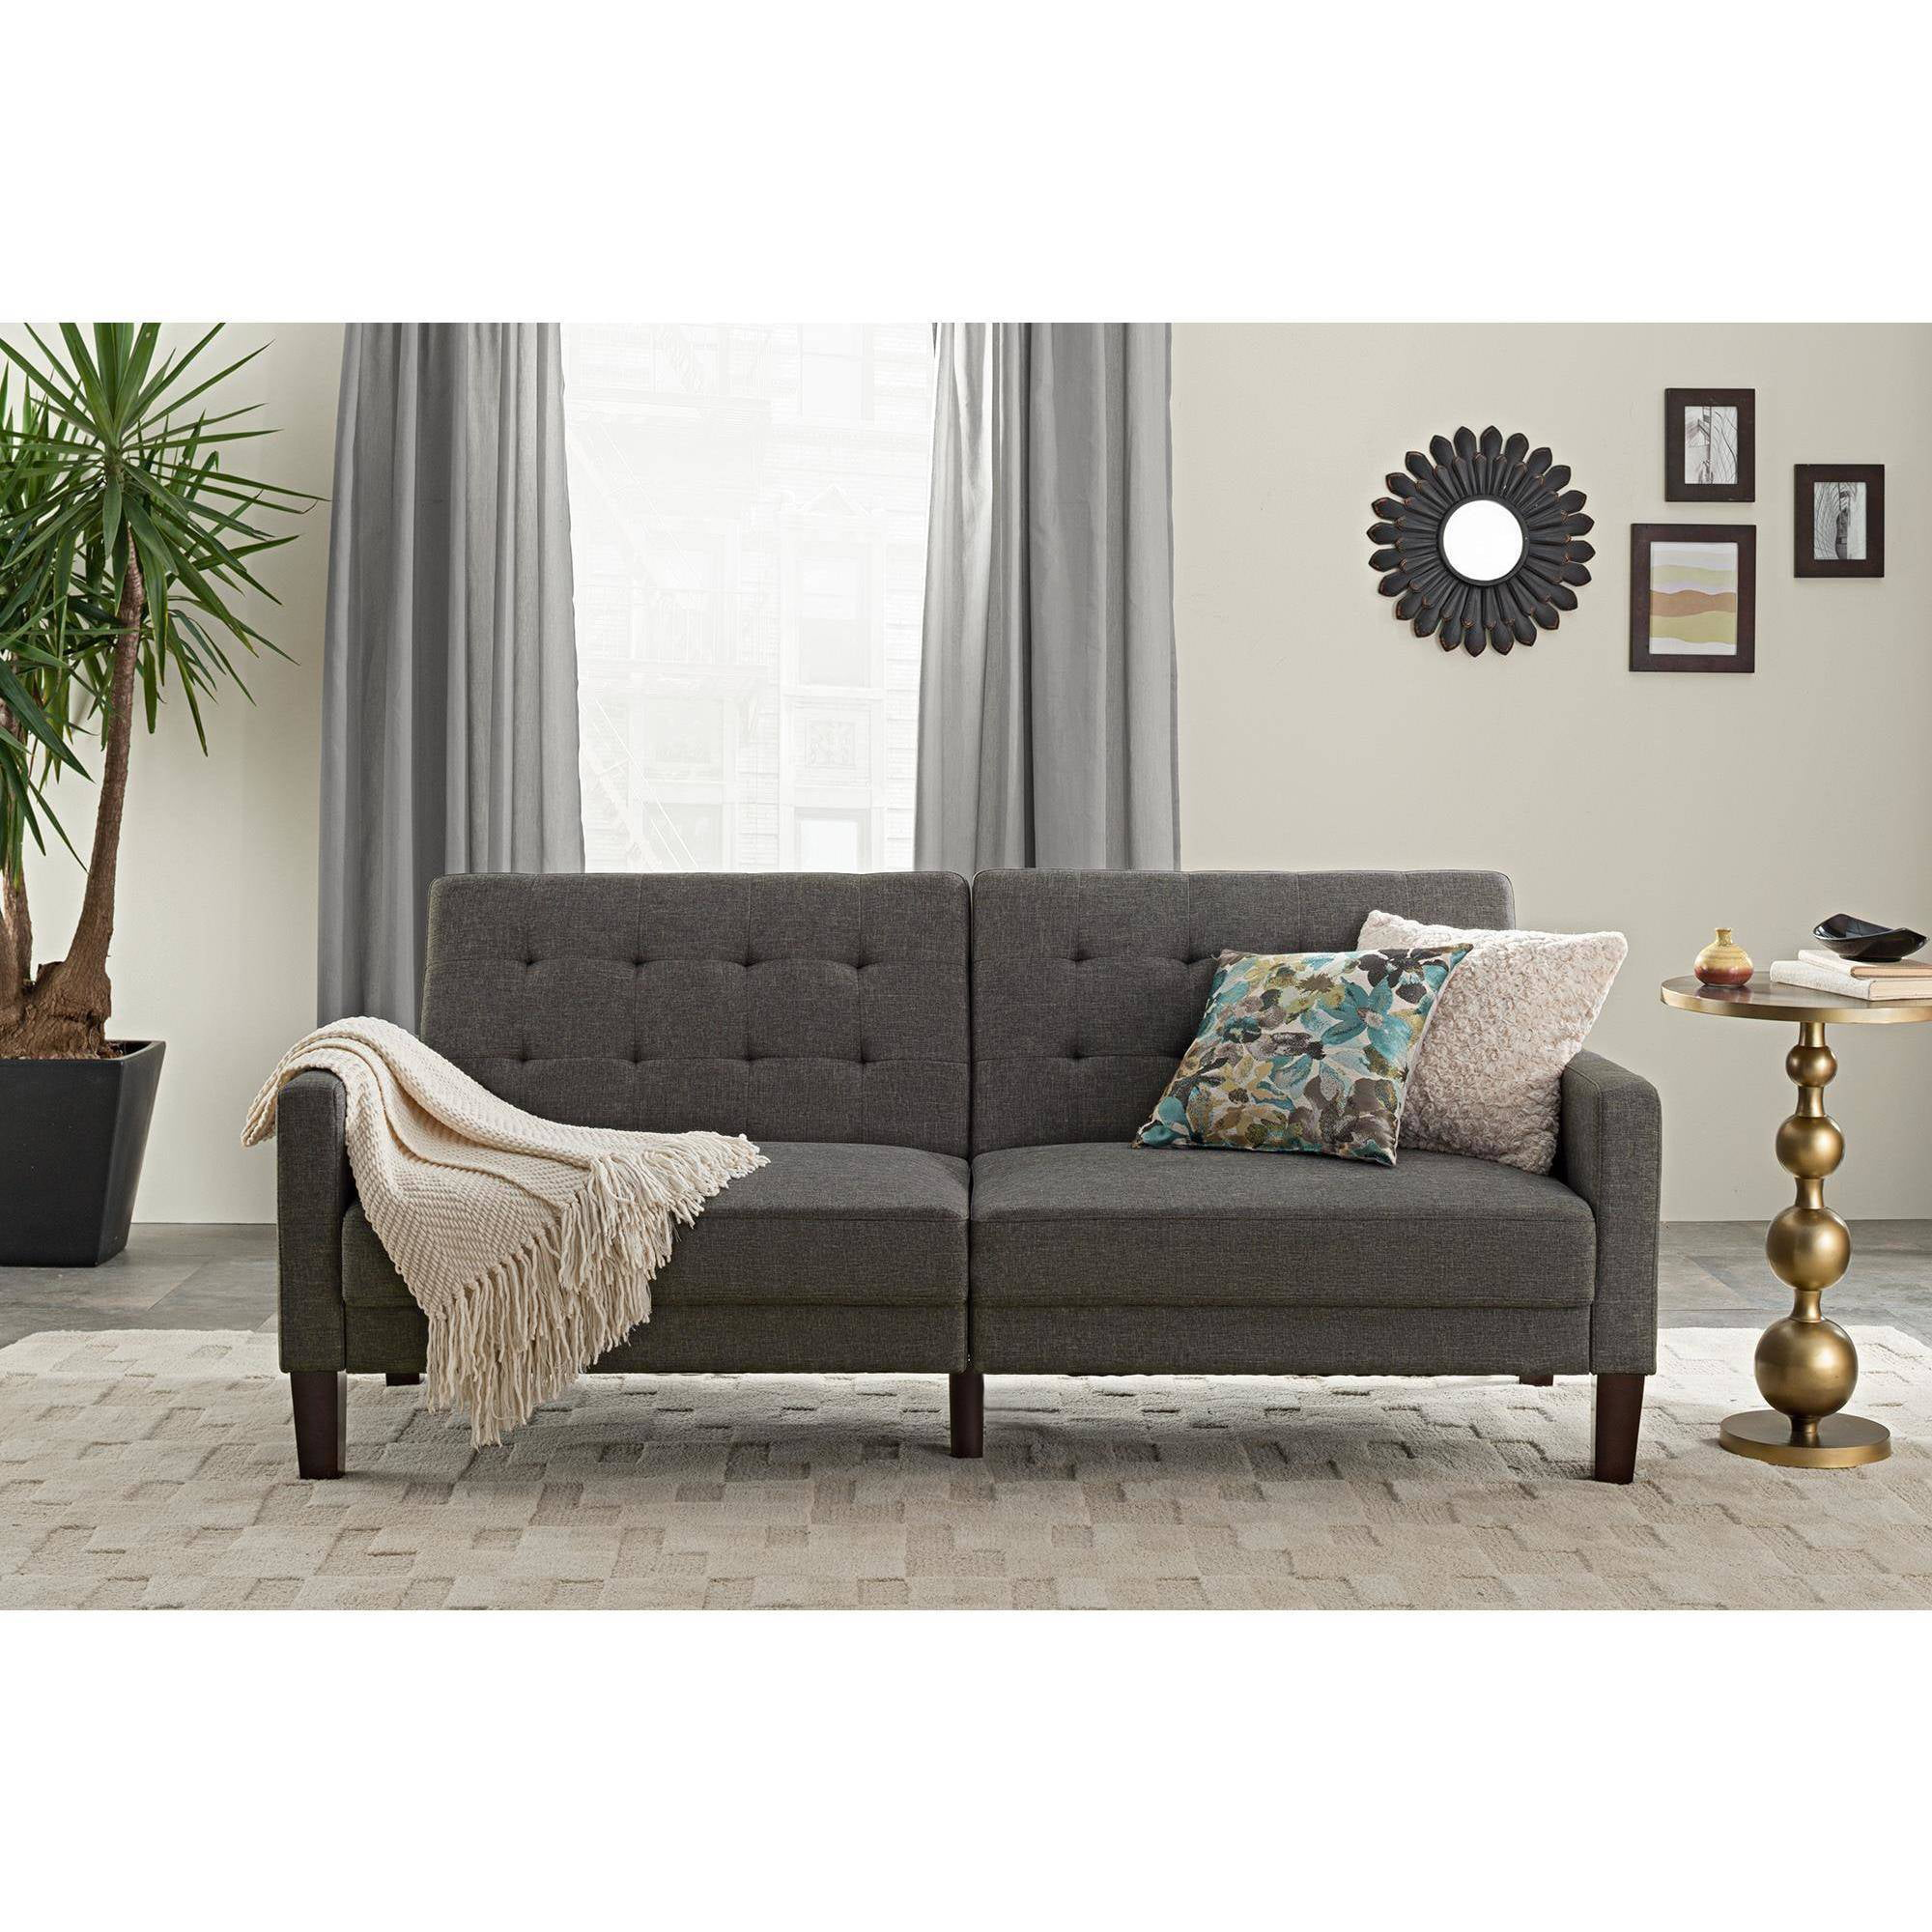 Signature Sleep Devon Sleeper Sofa, Gray Linen, Twin - Walmart